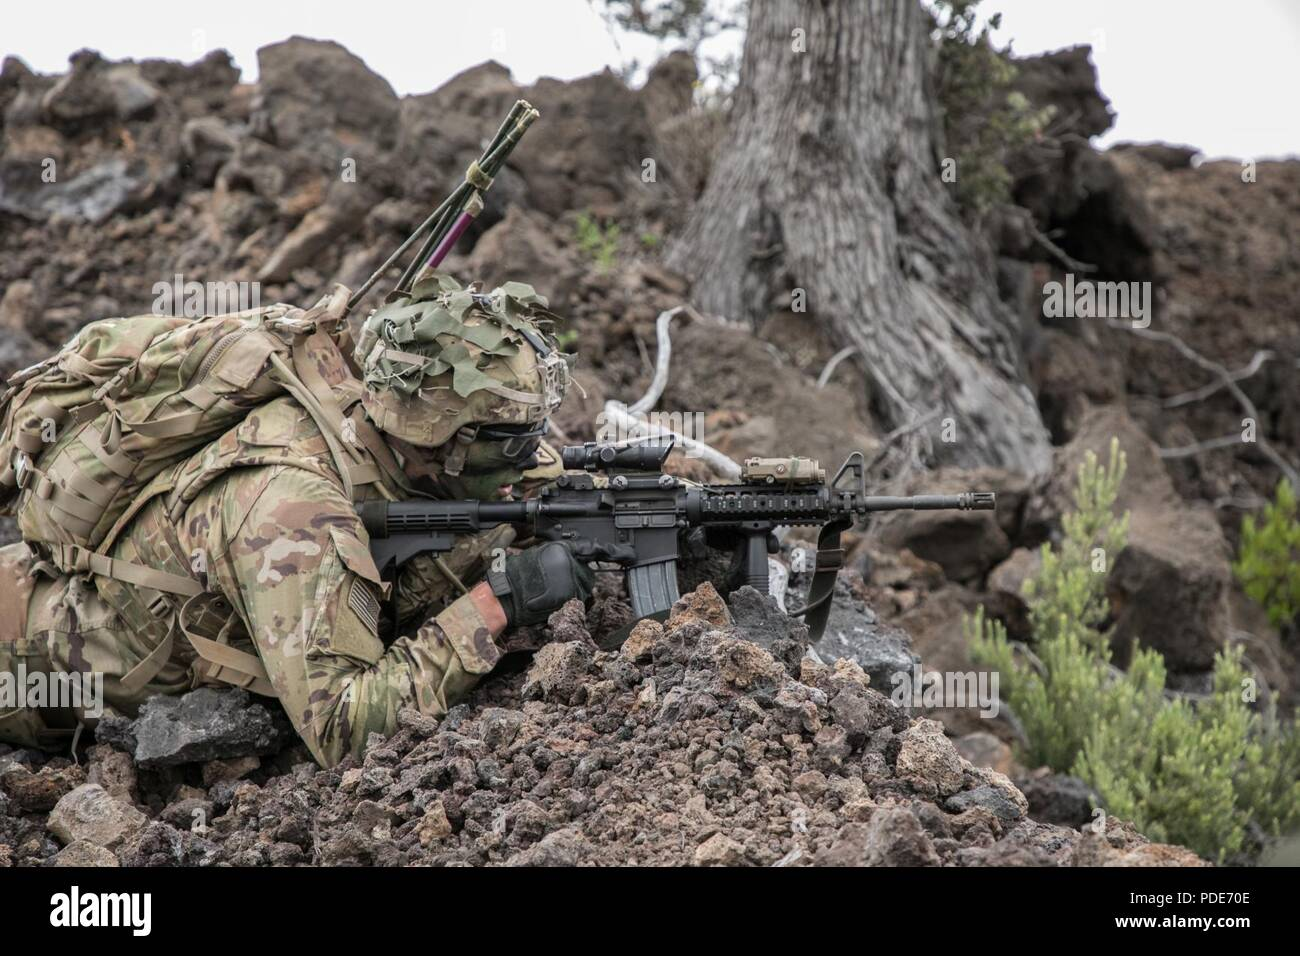 U.S. Army Trooper assigned to 2nd Squadron, 14th Calvary Regiment, 2nd Infantry Brigade Combat Team, 25th Infantry Division provides cover-fire during a Combined Arms Live Fire Exercise (CALFEX) at Pohakuloa Training Area, Hawaii, May 15, 2018. The CALFEX utilizes all the enablers available to the unit in order to increase interoperability, concentrate combat power and mass effects on the objective. - Stock Image